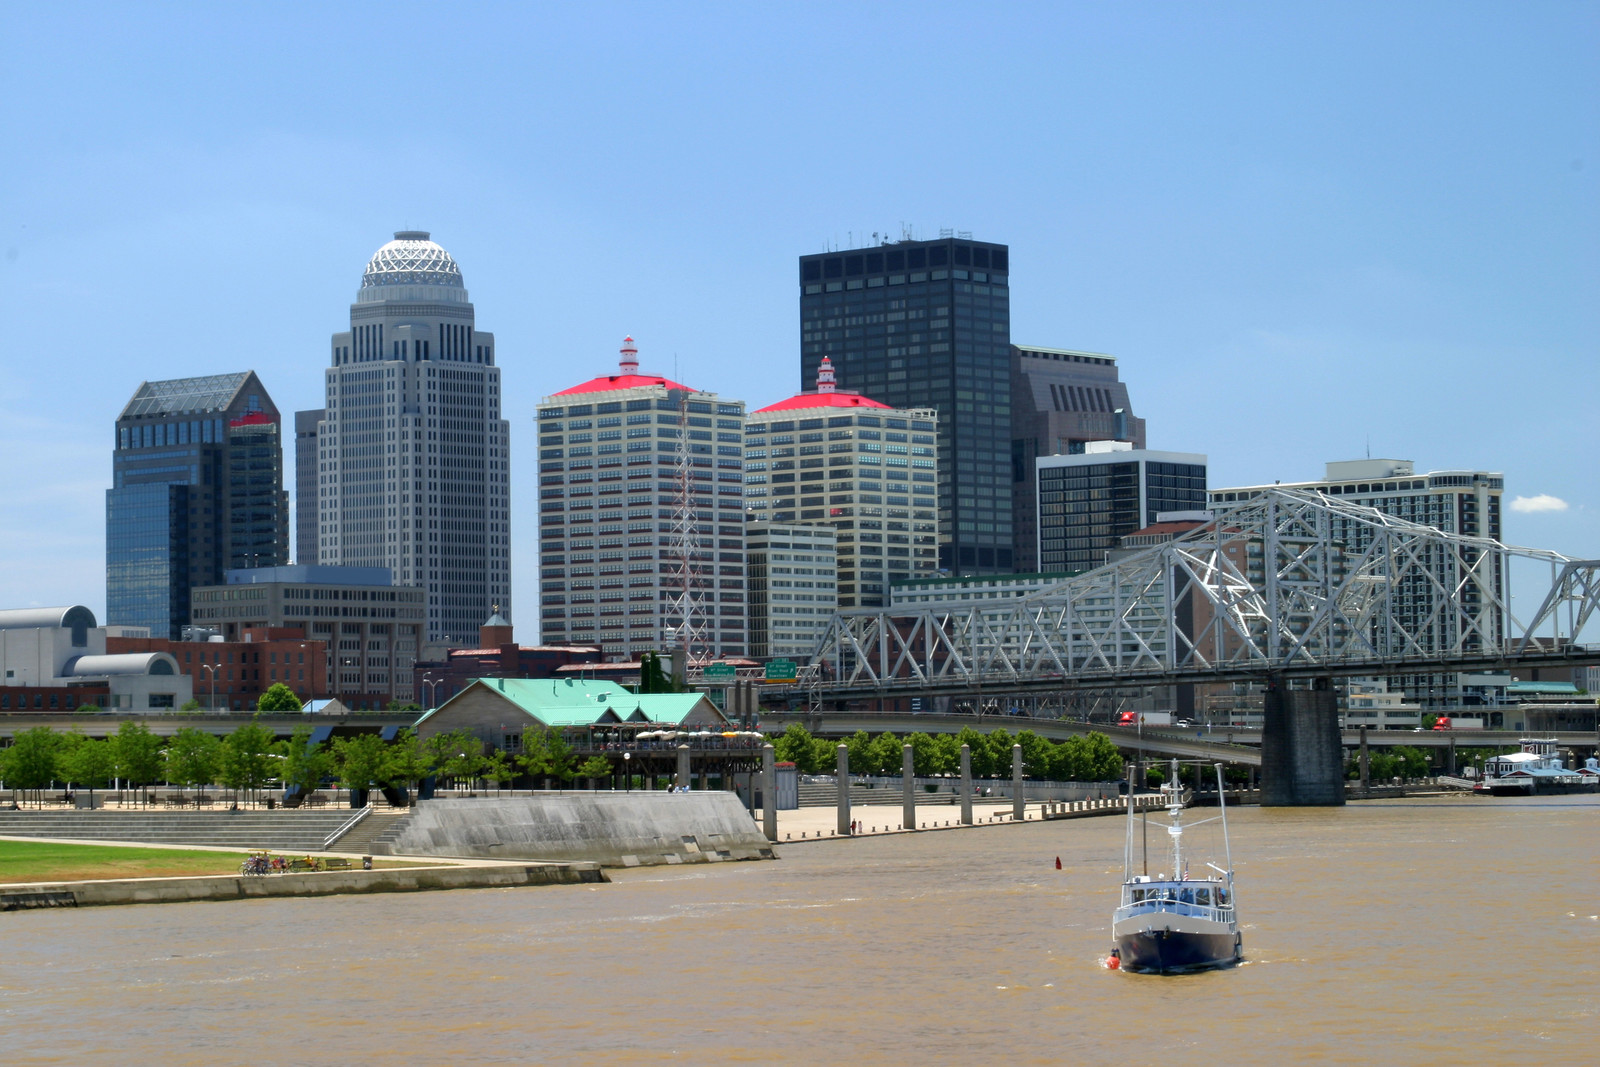 Sunny day with blue skies over Louisville skyline, photo taken from the Ohio River just past the bridge